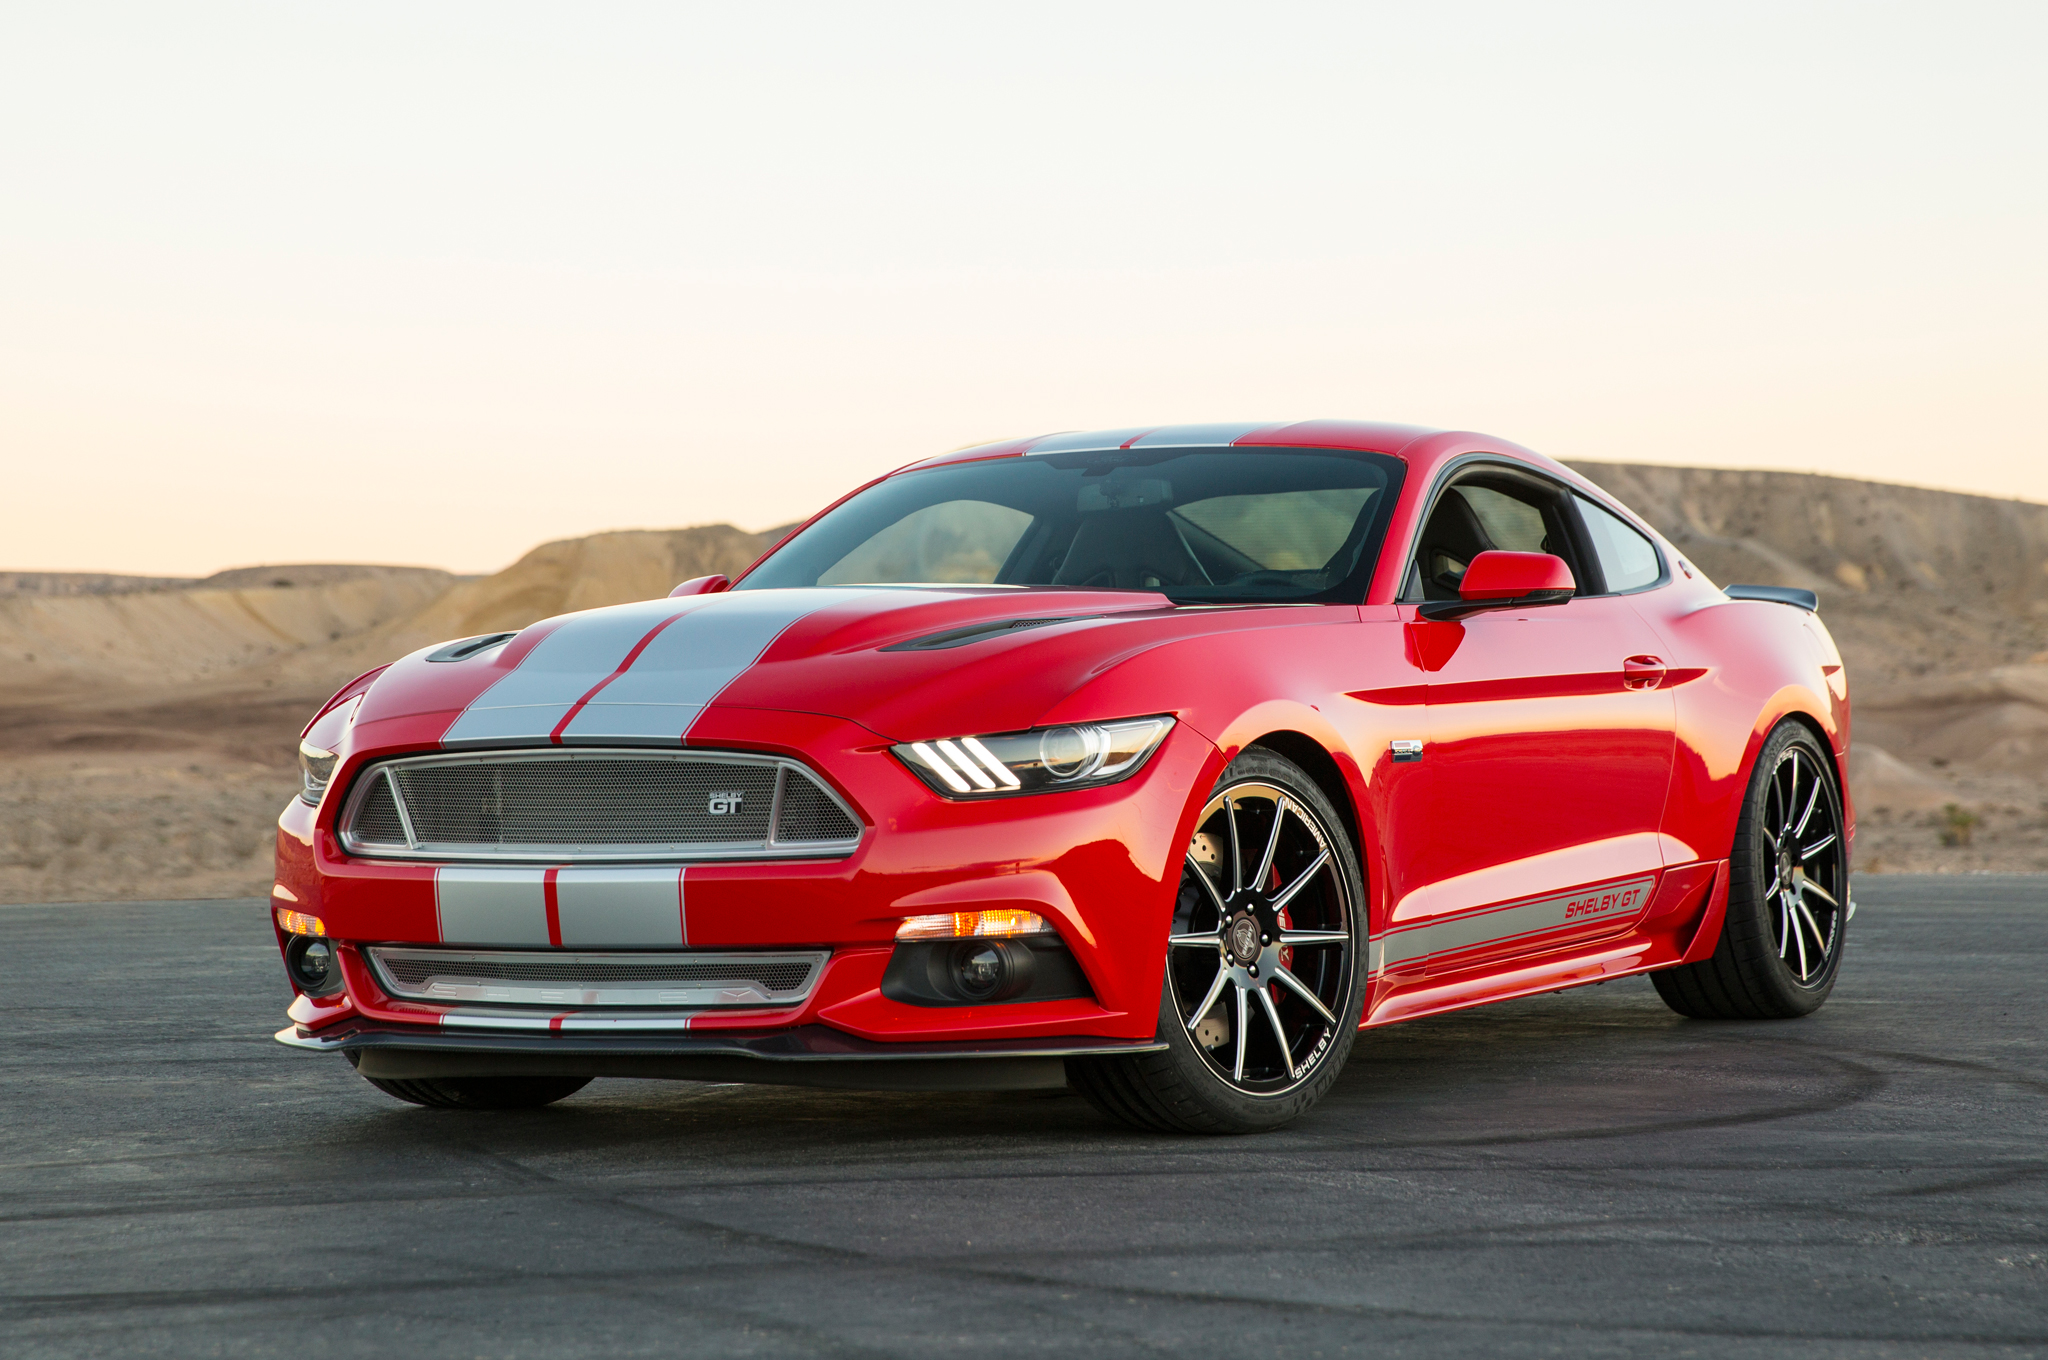 2015 shelby gt is a 627 hp tuner ford mustang motor trend. Black Bedroom Furniture Sets. Home Design Ideas